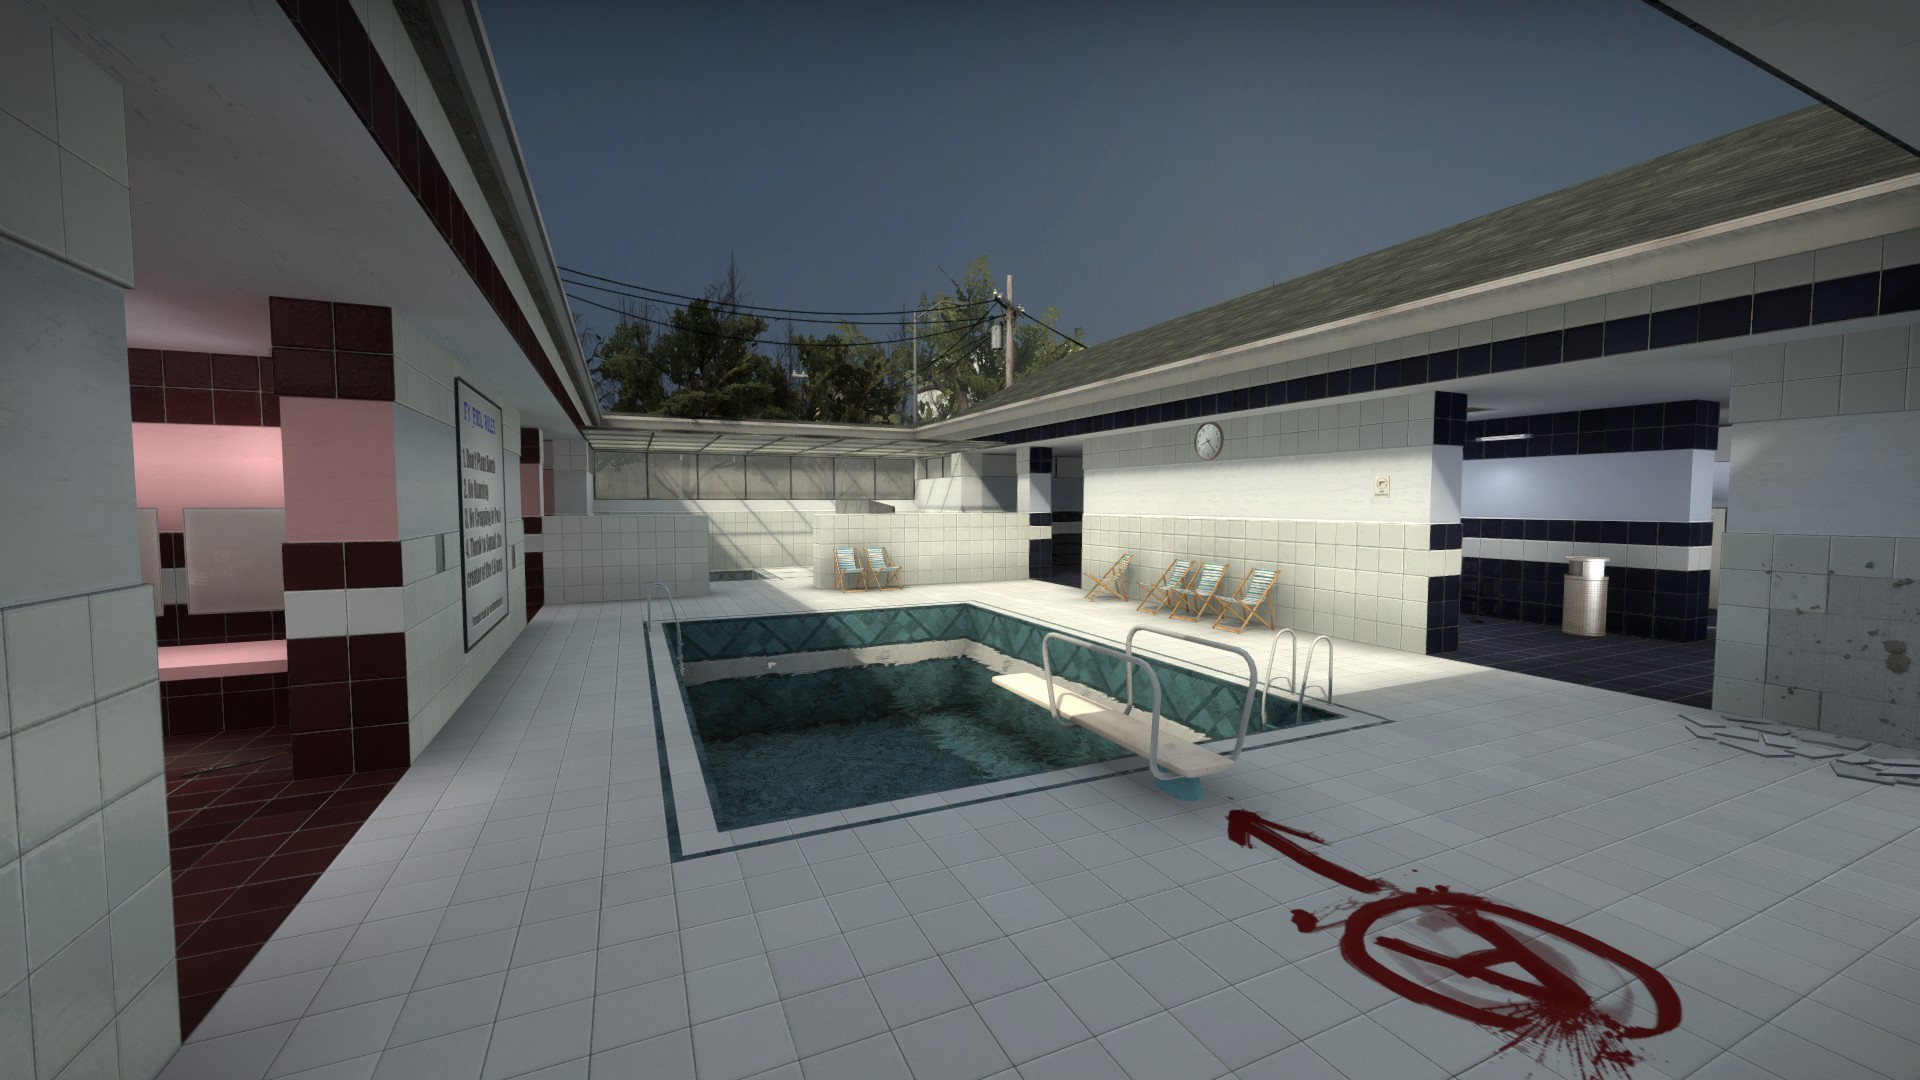 Fy pool day для csgo counter strike global offensive training map